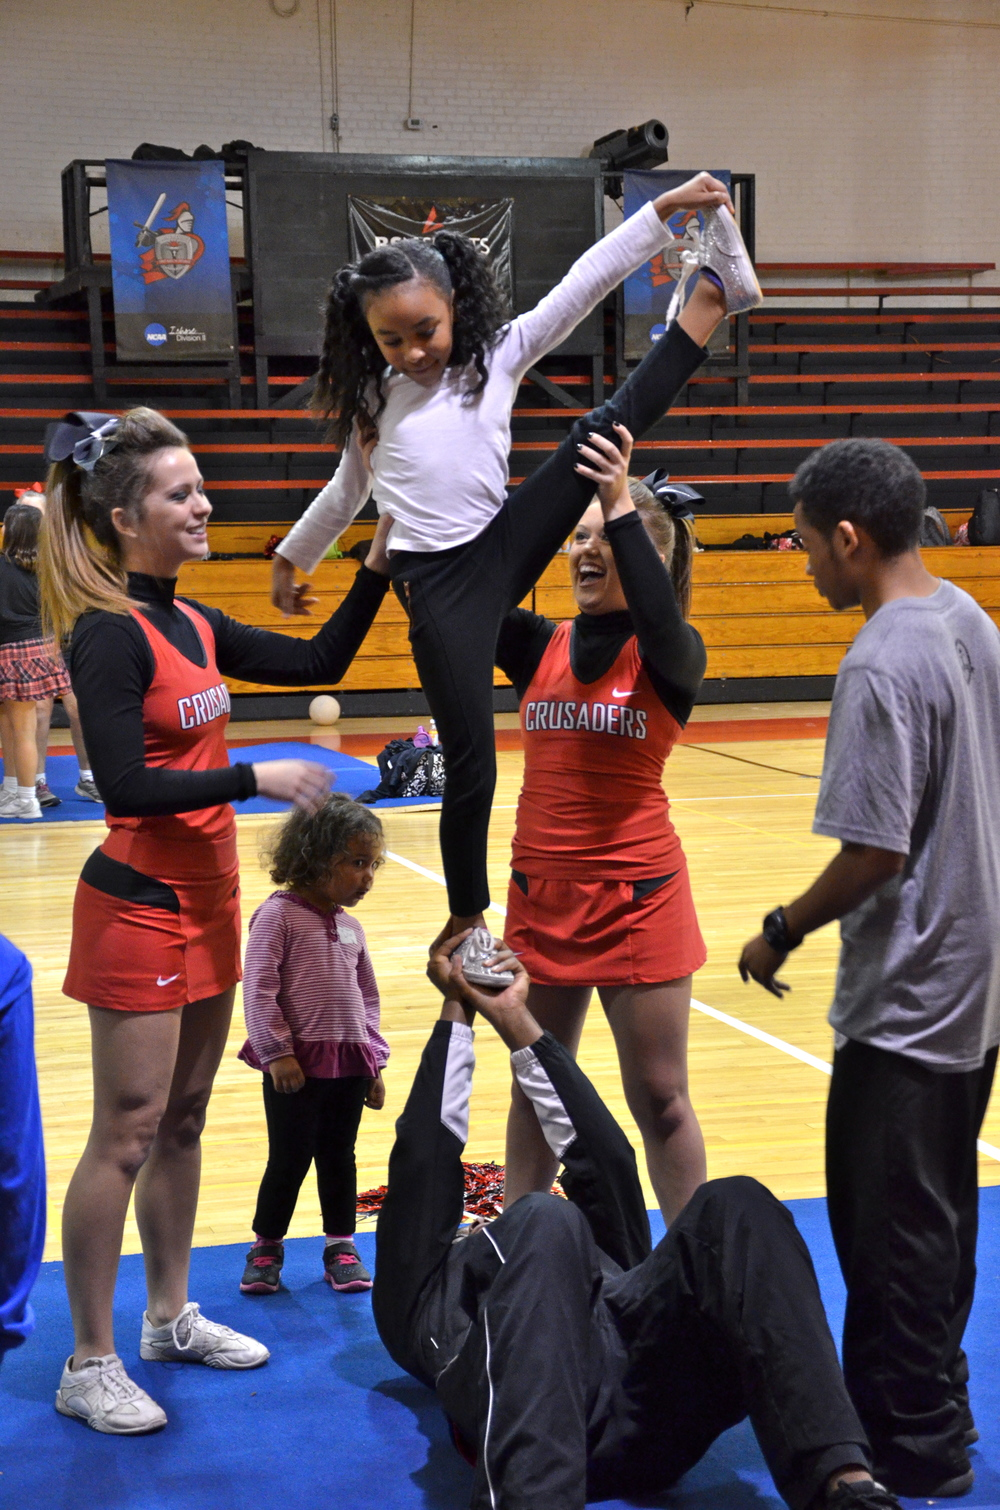 This mini-Crusader is going above and beyond to show off her skills at Crusader Cheer Camp last weekend.